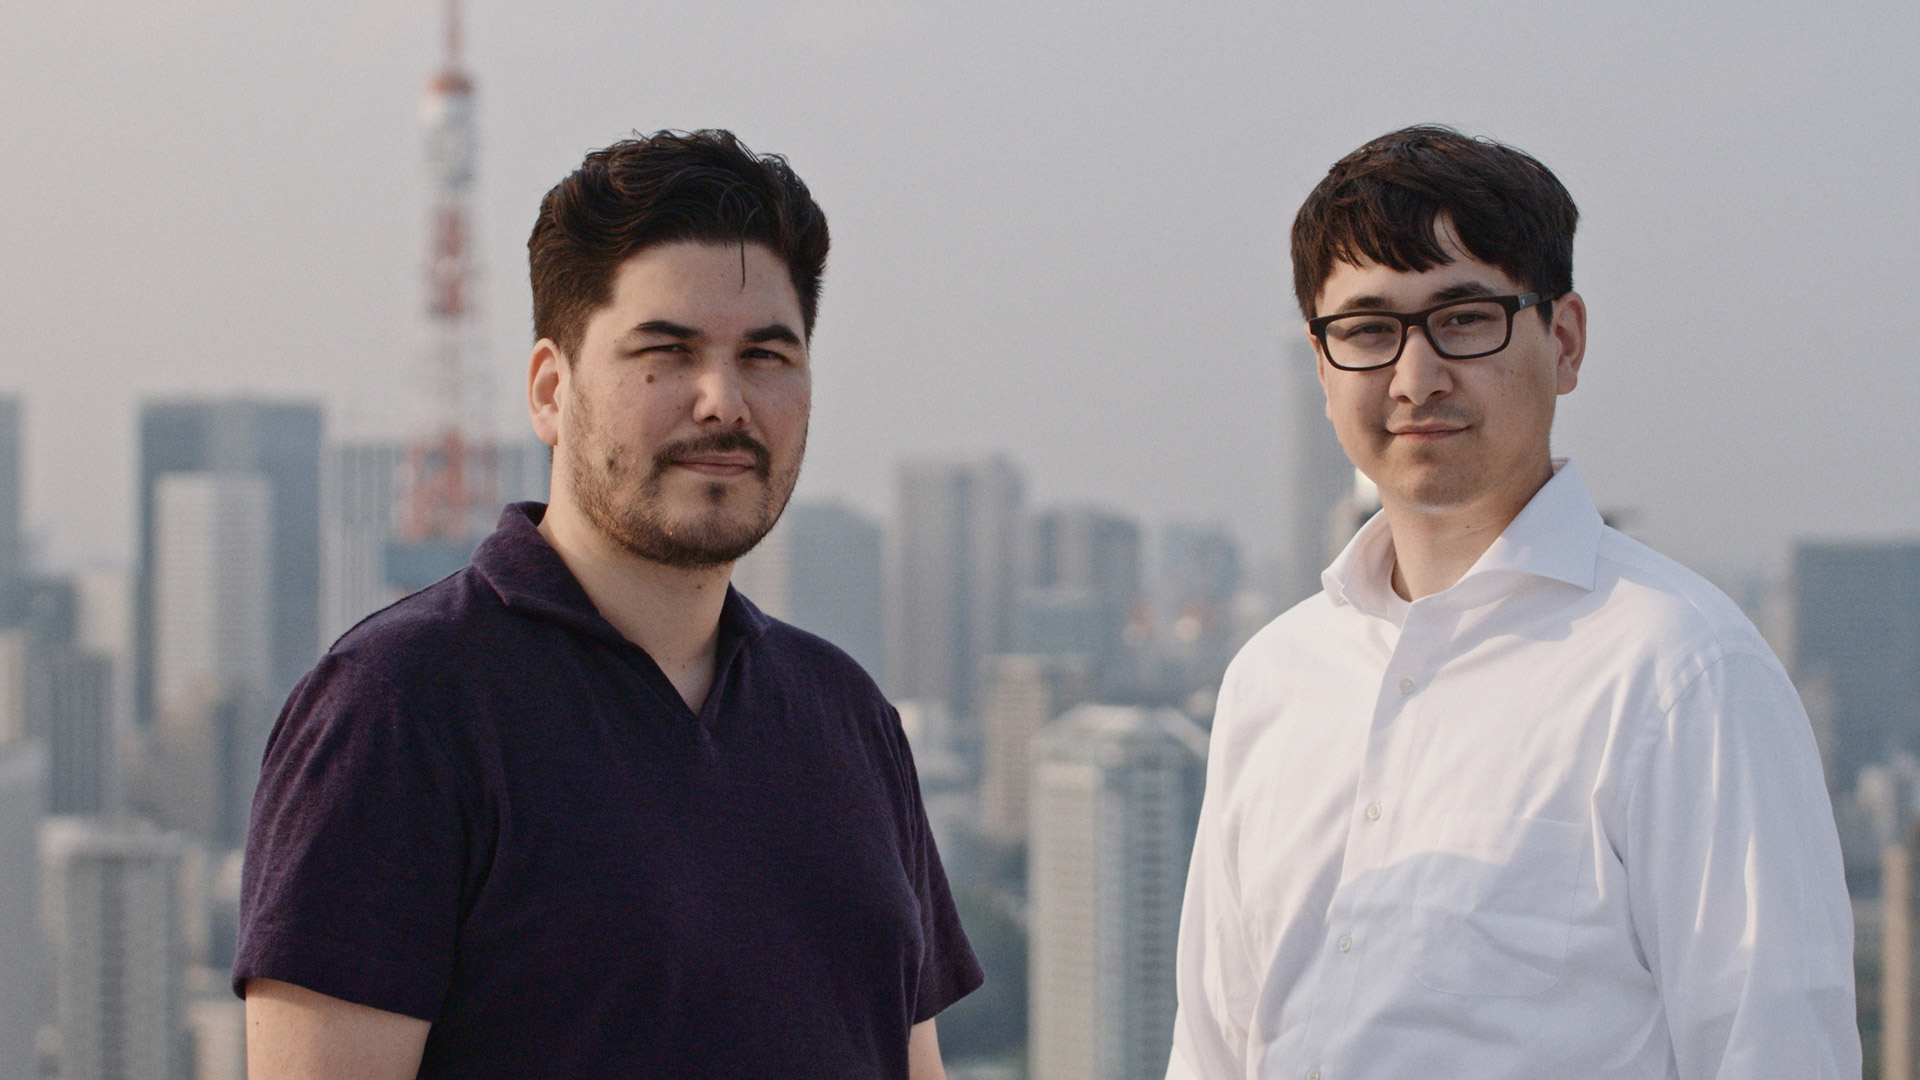 Meet the founders of Coder Society